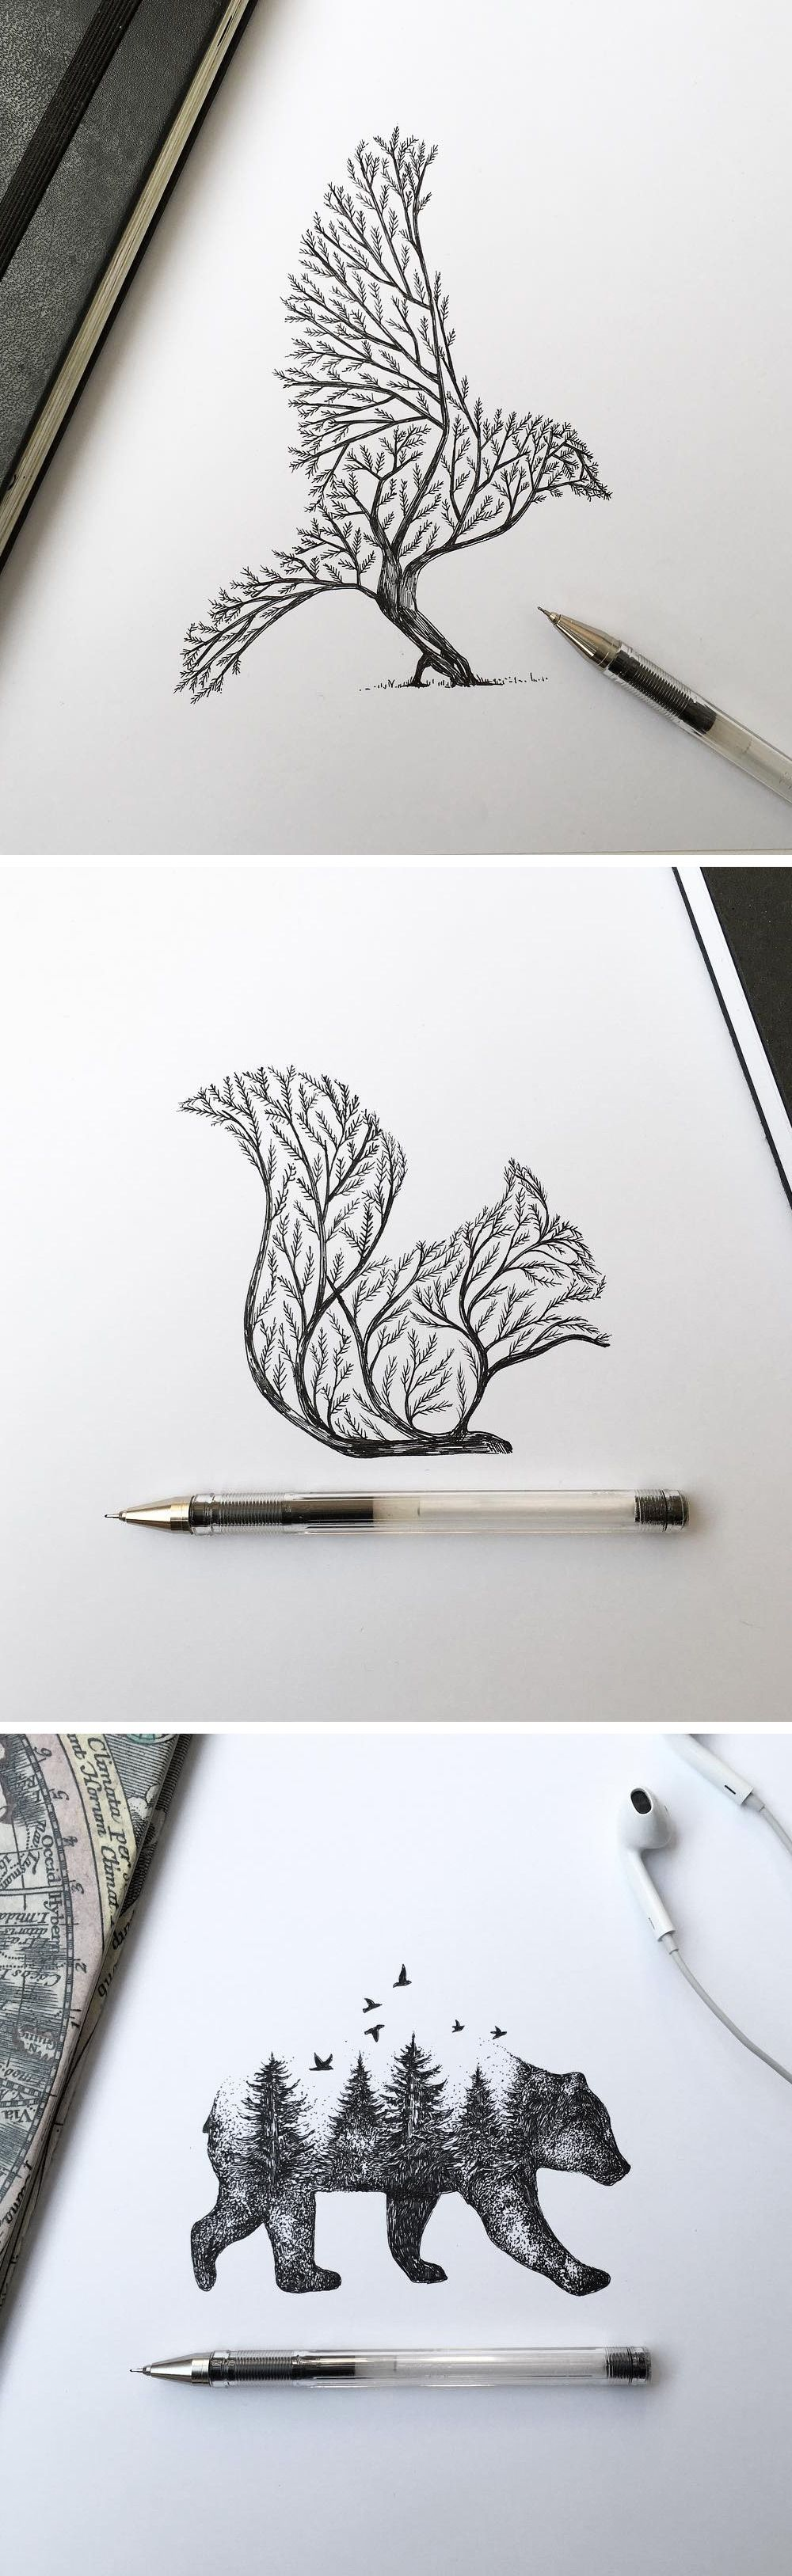 Pen ink depictions of trees sprouting into animals by alfred basha